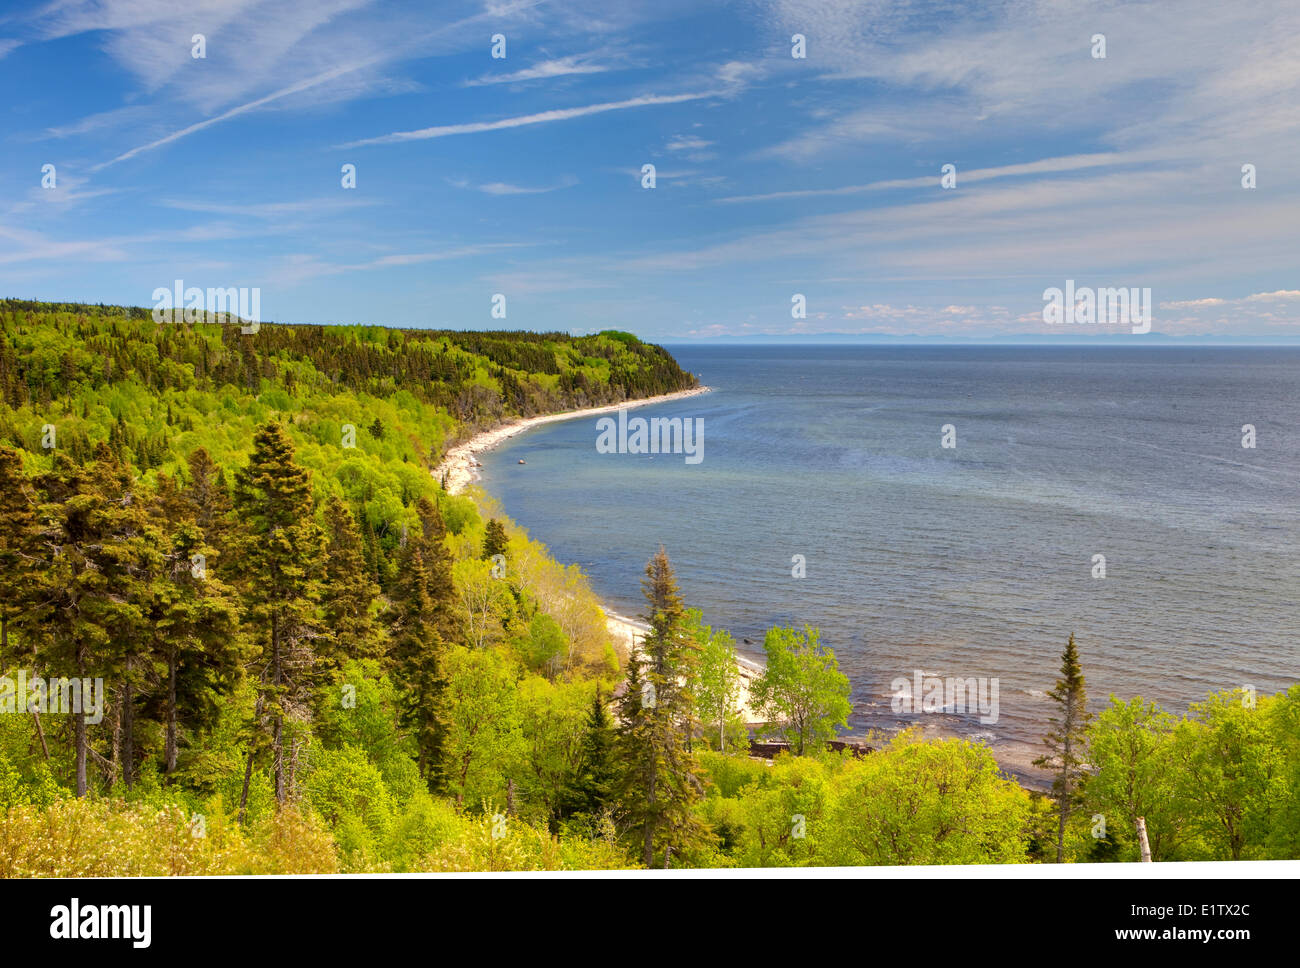 Northshore, St Lawrence, Cote Nord, Quebec, Canada - Stock Image